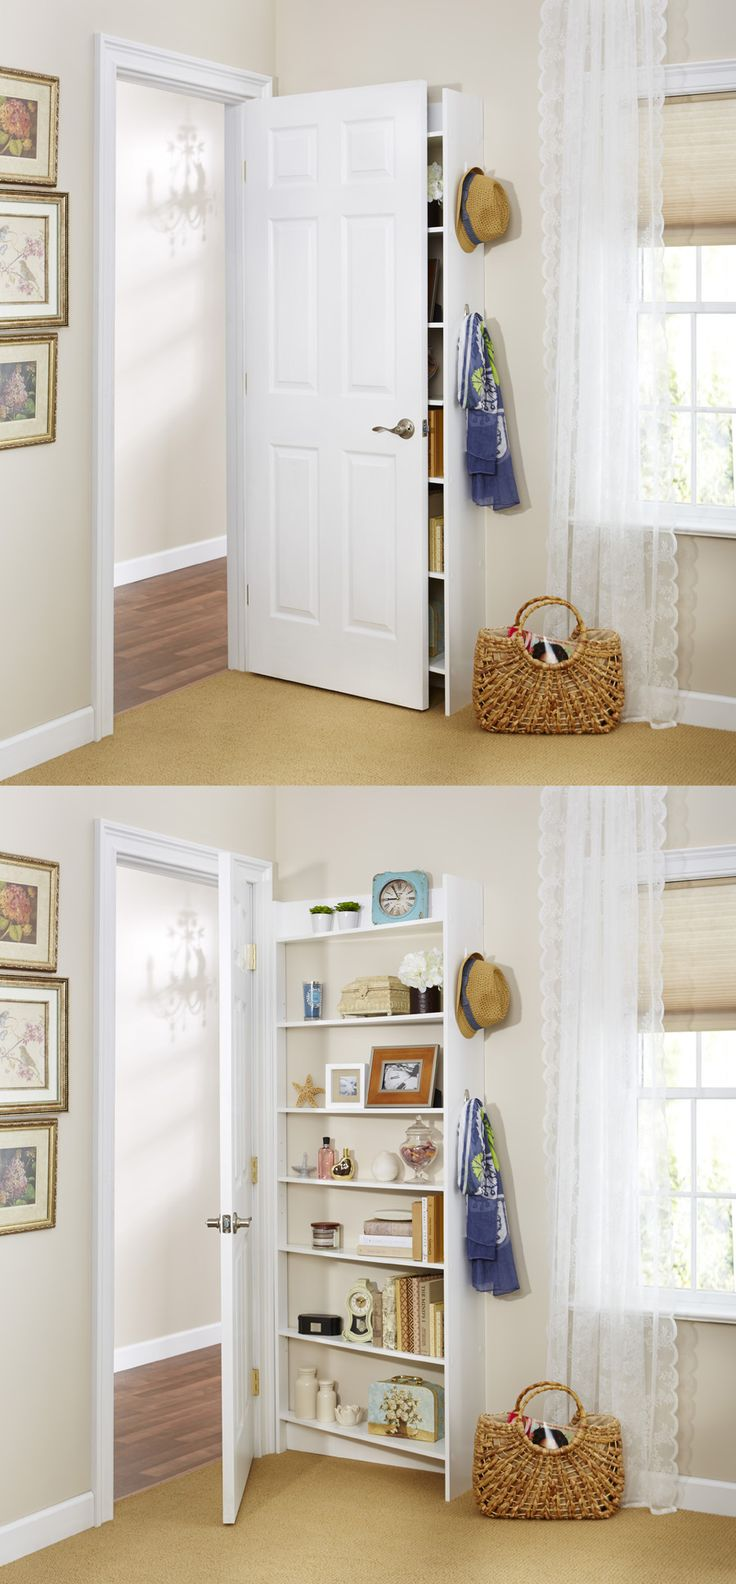 Amazing storage ideas for small bedrooms perfect for our bedroom door. behind the door shelving system by foremost , nbqwvpj